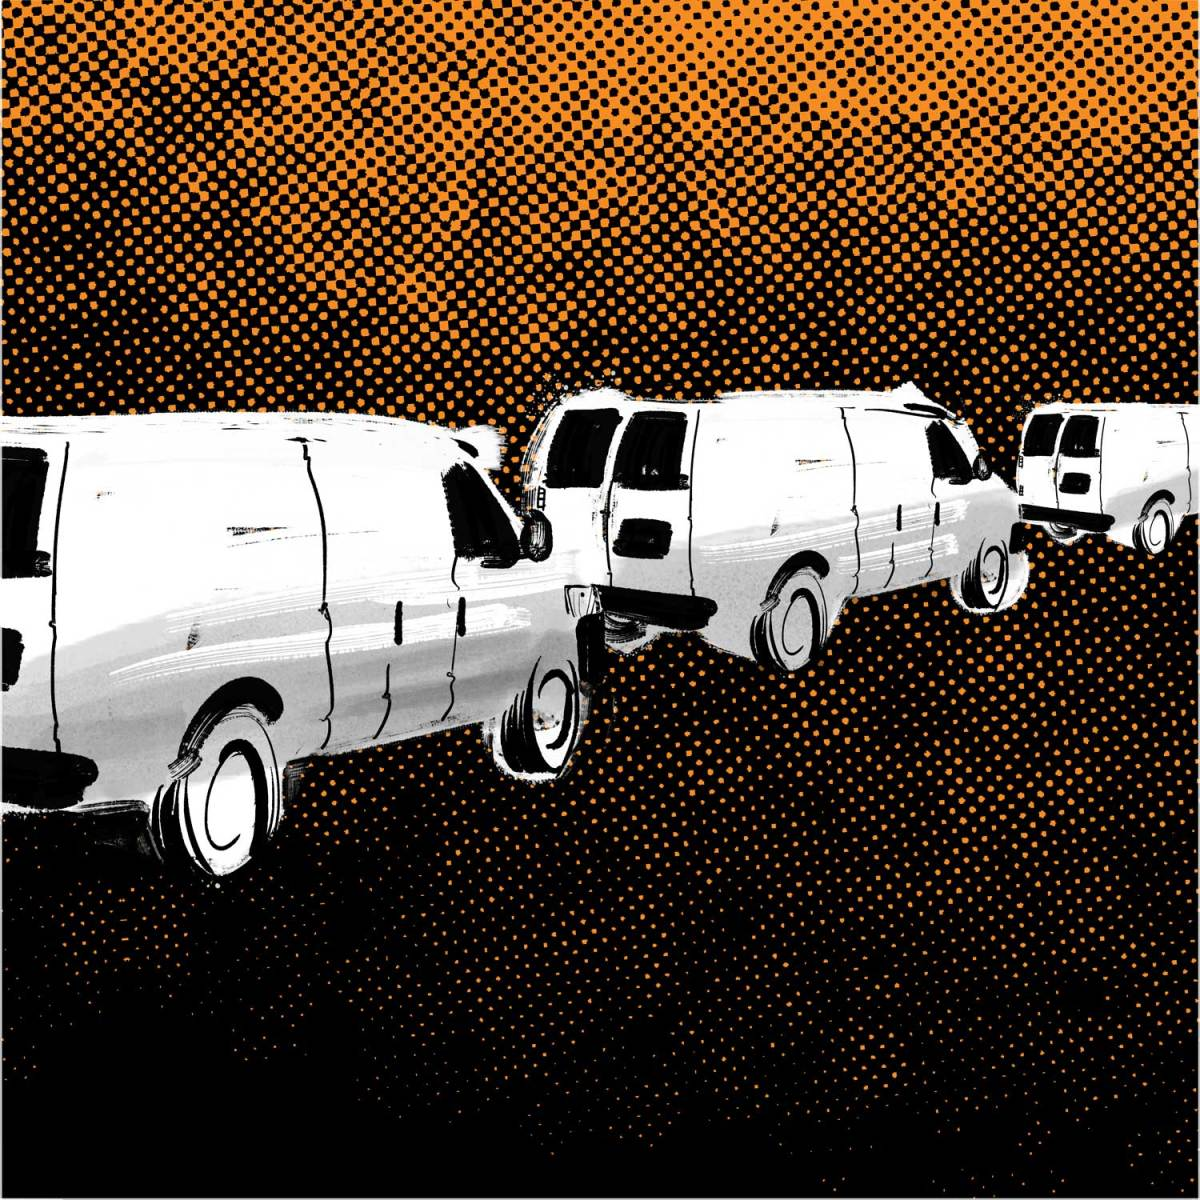 An illustration shows a line of white vans driving against a dark background and orange sky.